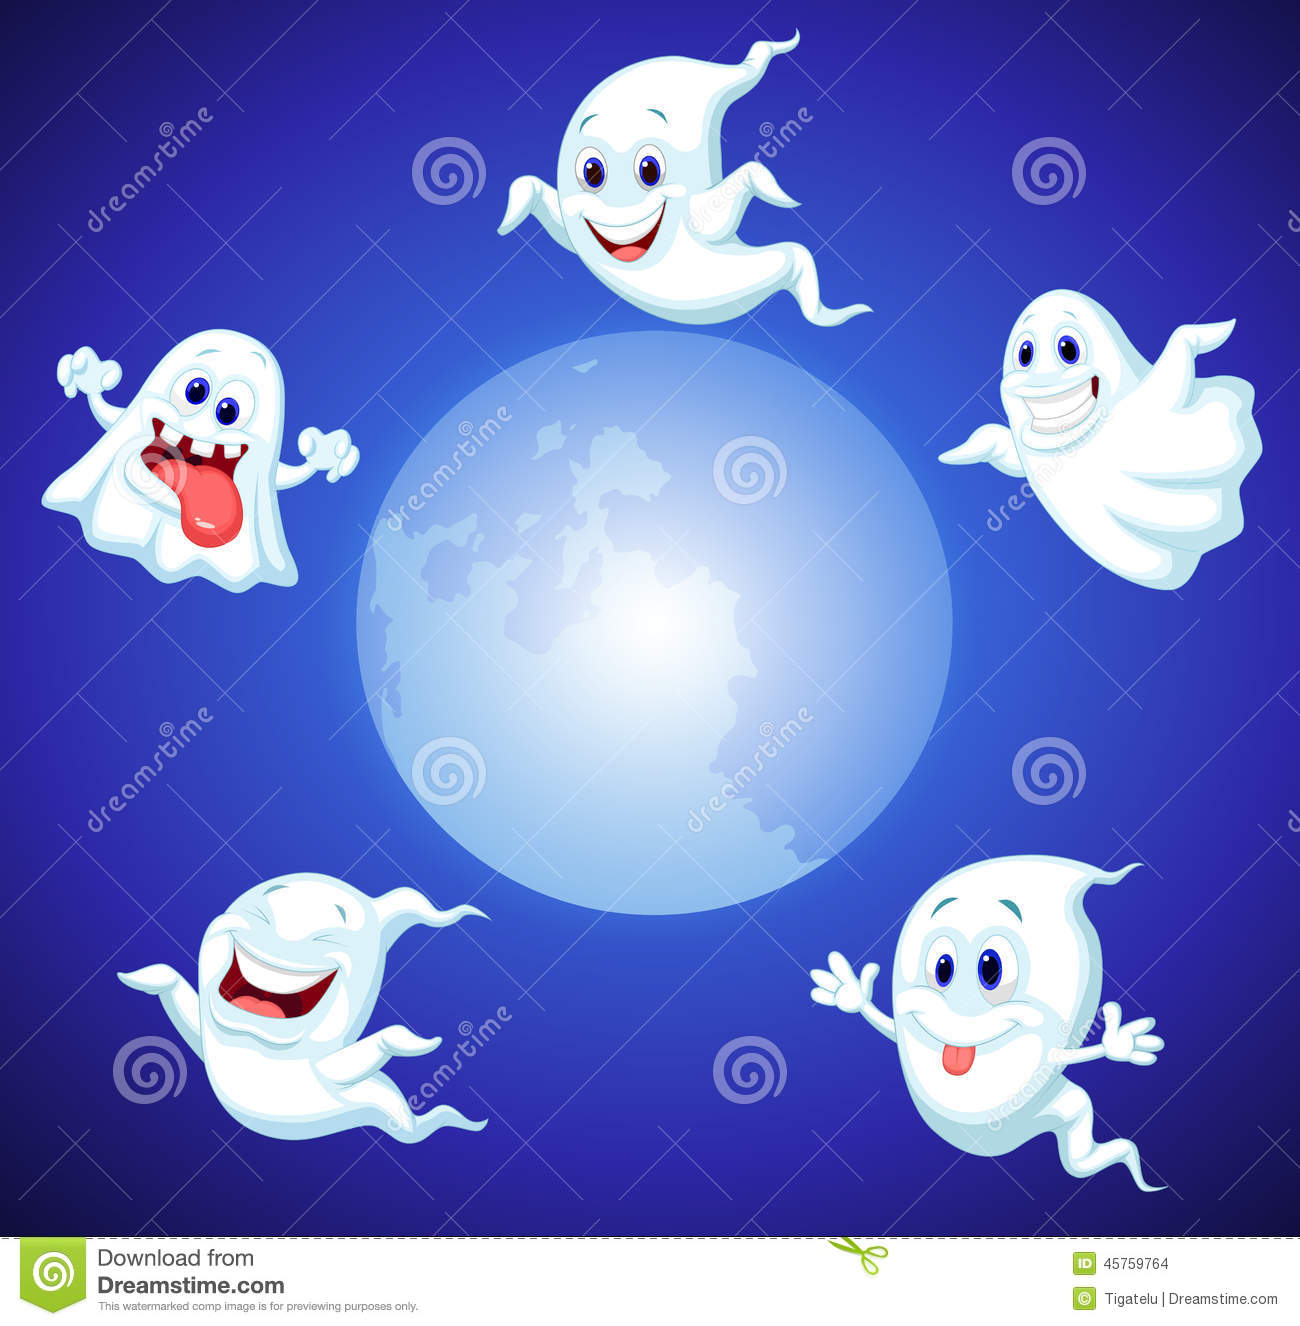 Halloween Ghost Cartoon Stock Vector - Image: 45759764